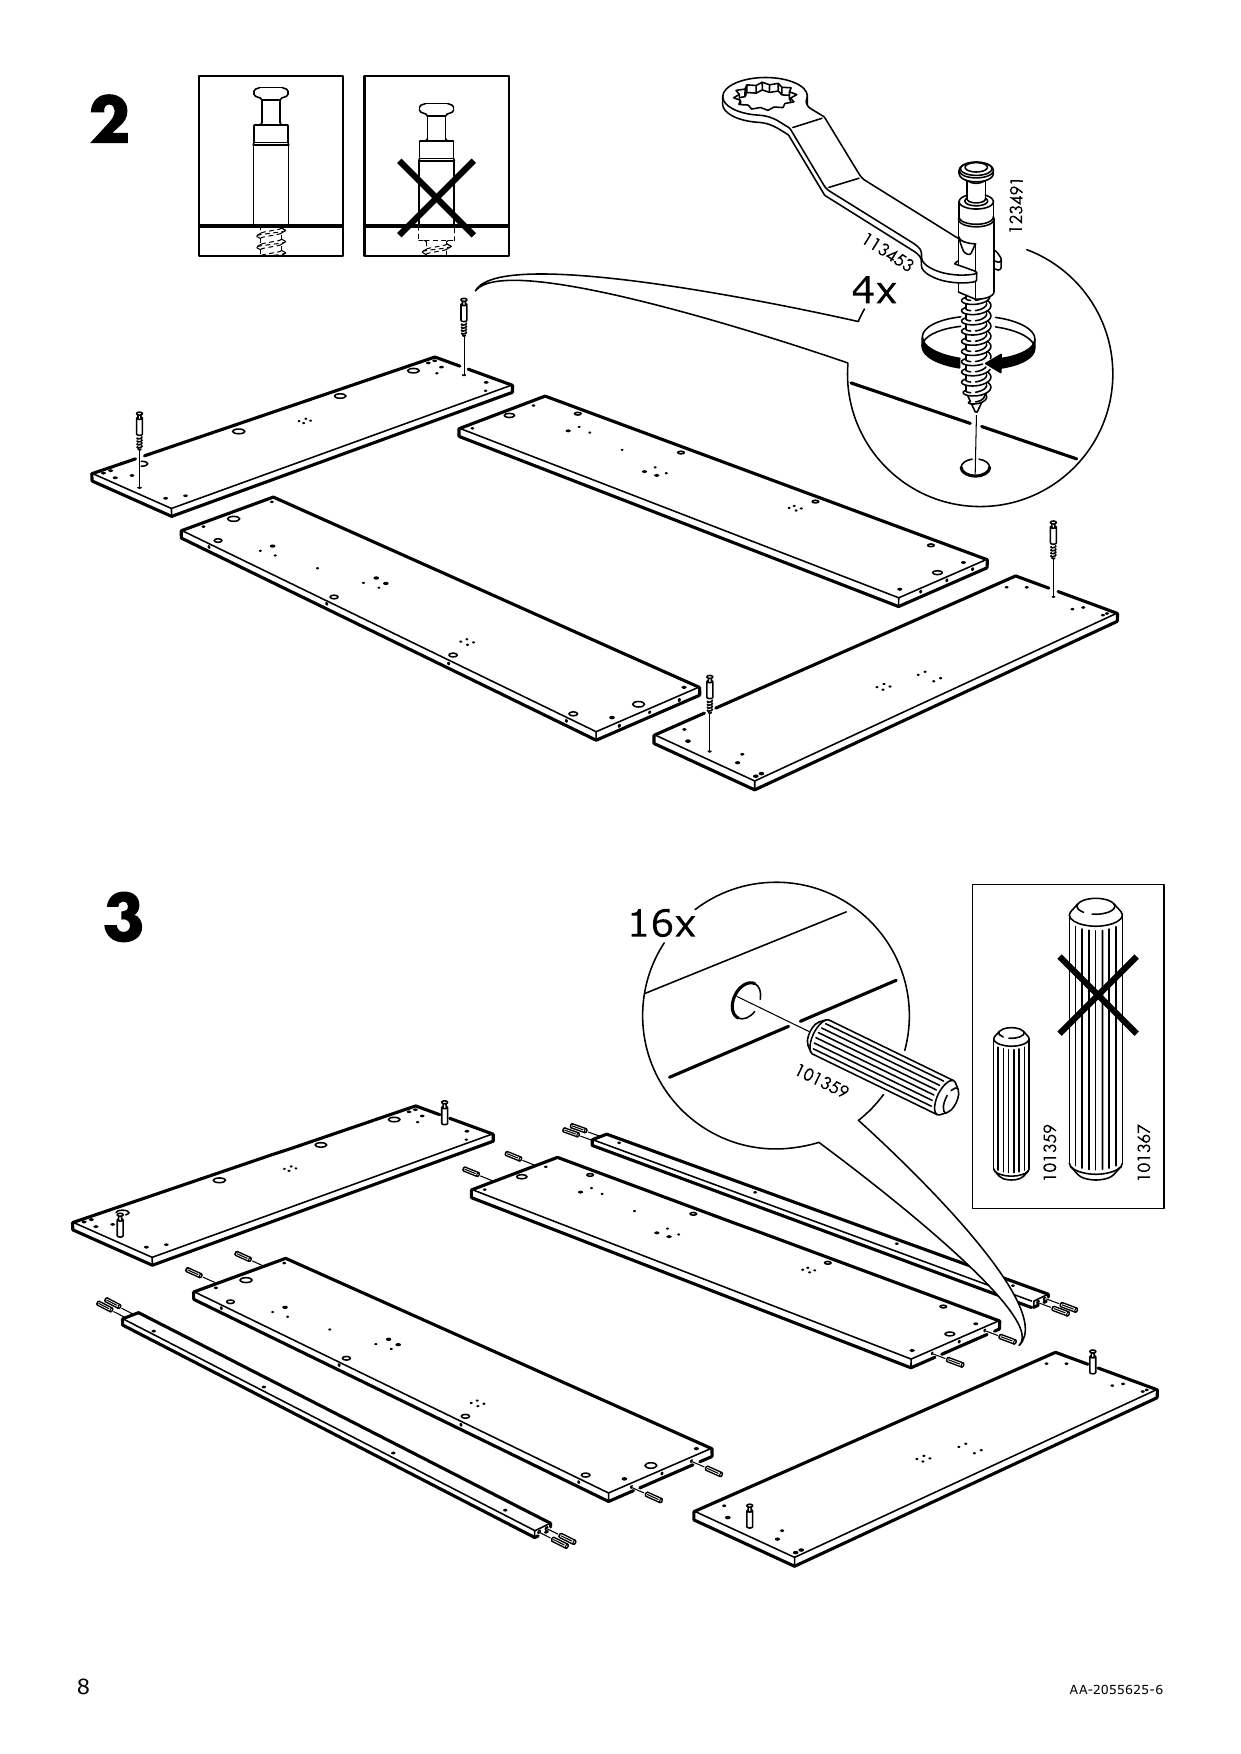 IKEA MALM Storage bed Assembly Instruction - 8